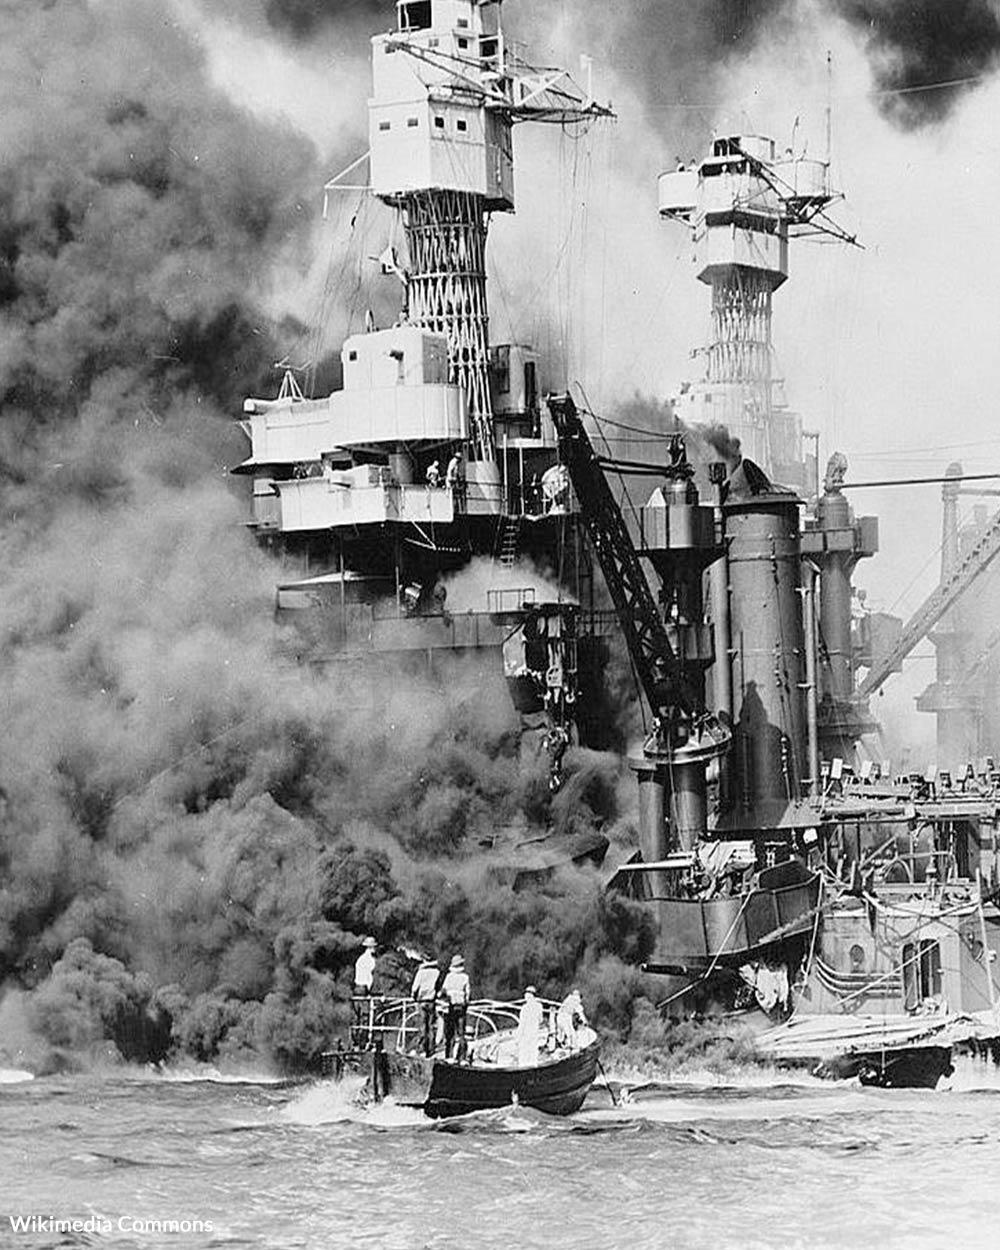 Pearl Harbor was attacked by the Japanese on Sunday, Dec. 7, 1941.